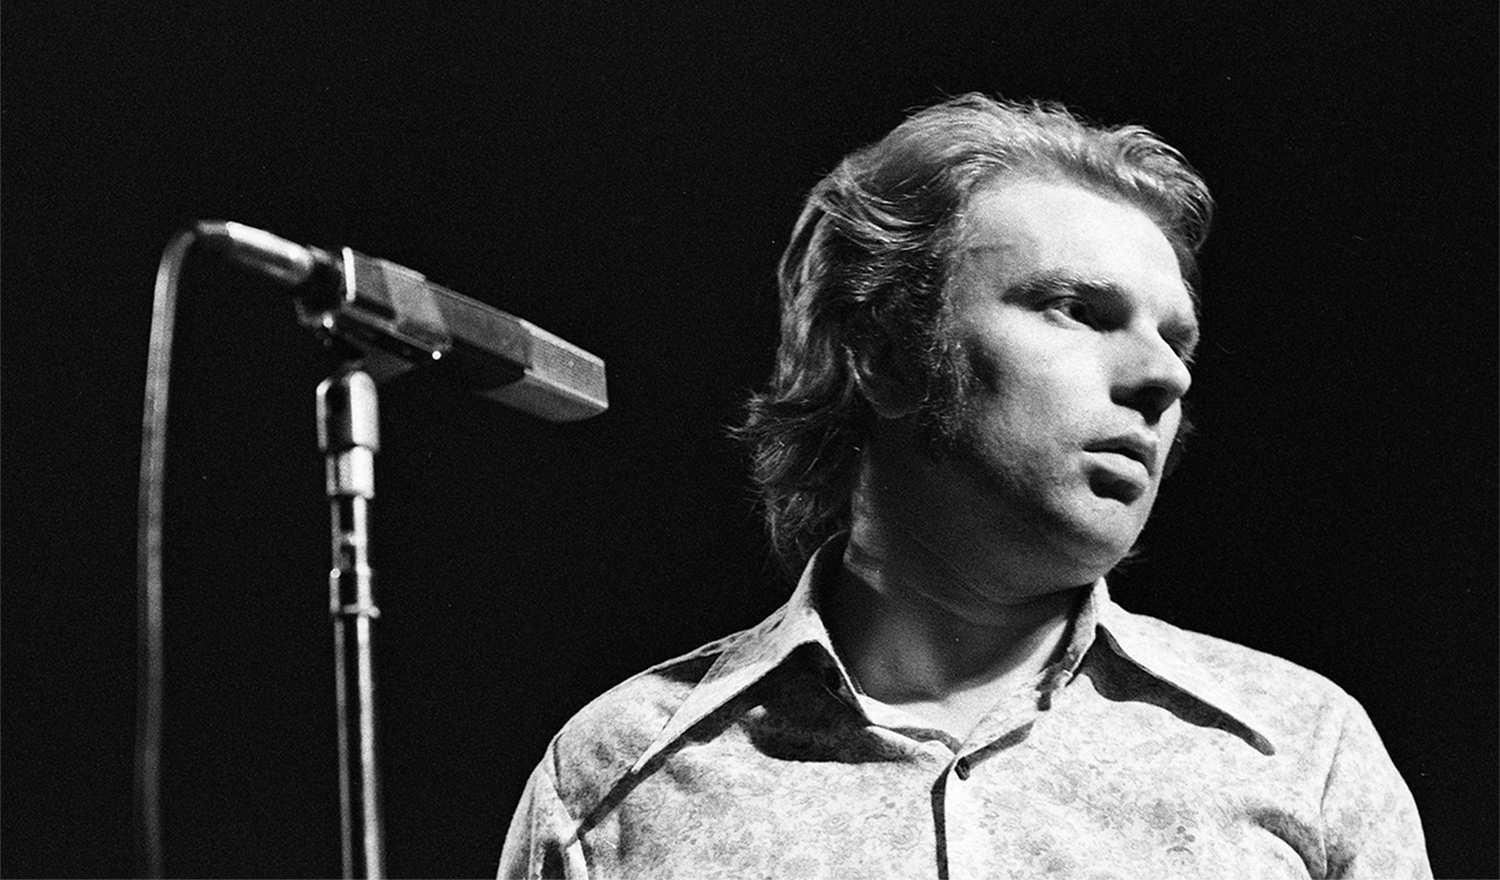 Home_VanMorrison_VB2_V3008a copy.jpg